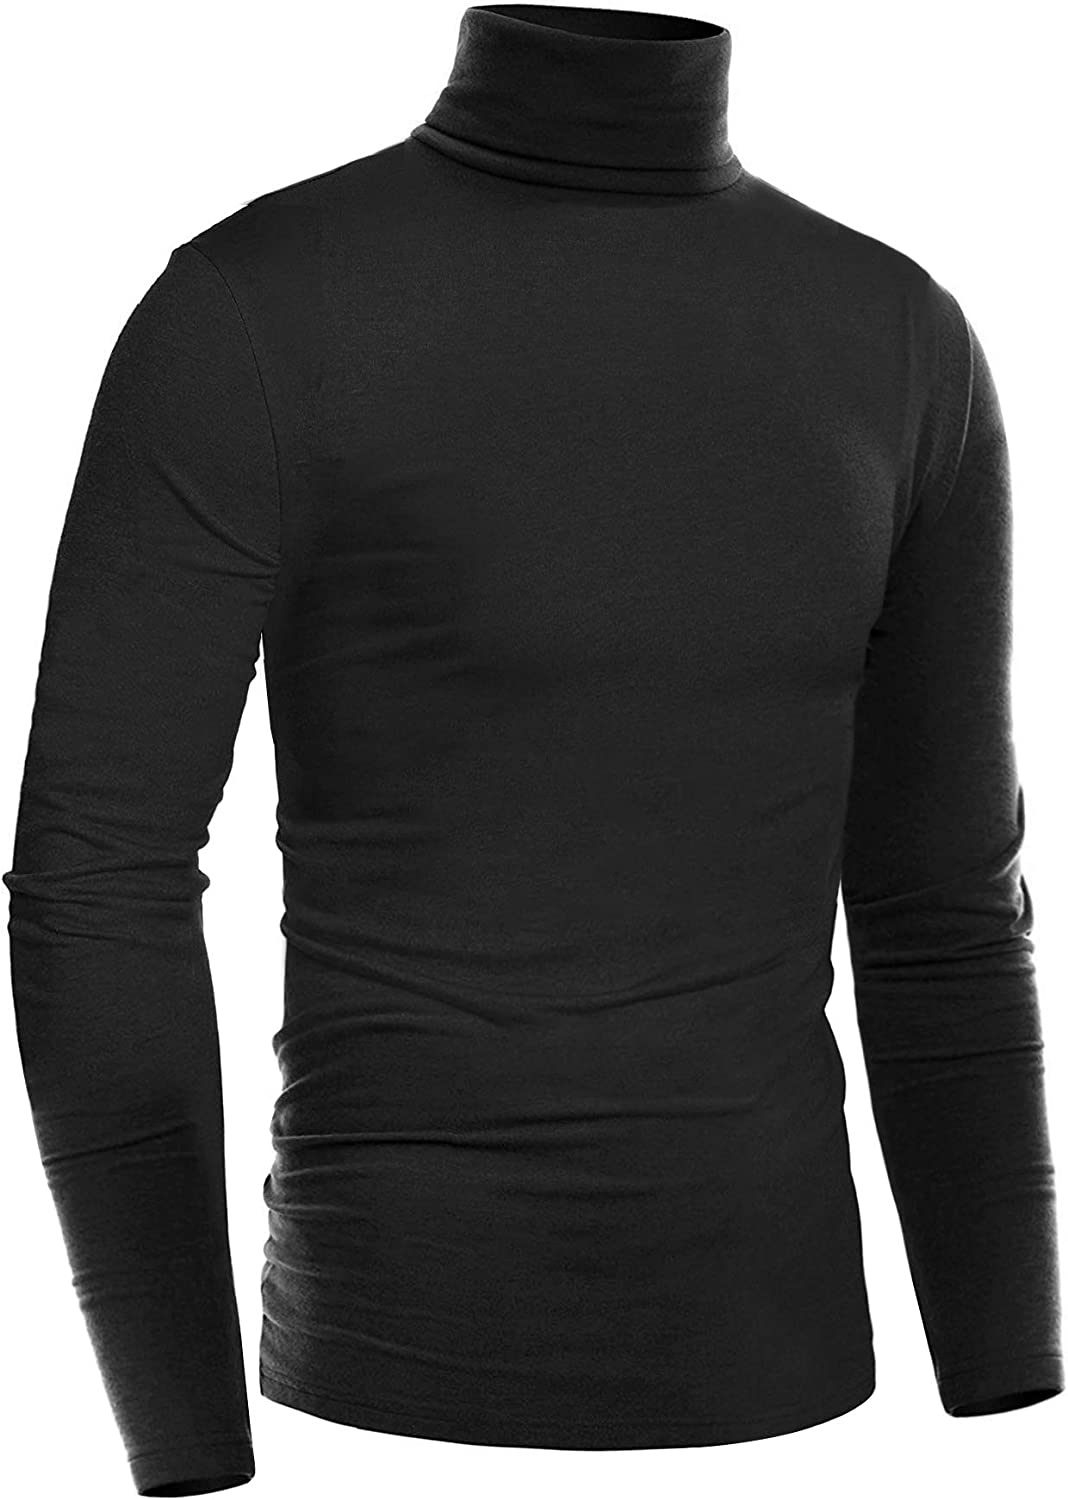 ZEGOLO Mens Thermal Mock Turtleneck Long Sleeve T Shirt Knitted Pullover Basic Slim Fit Shirts at  Men's Clothing store